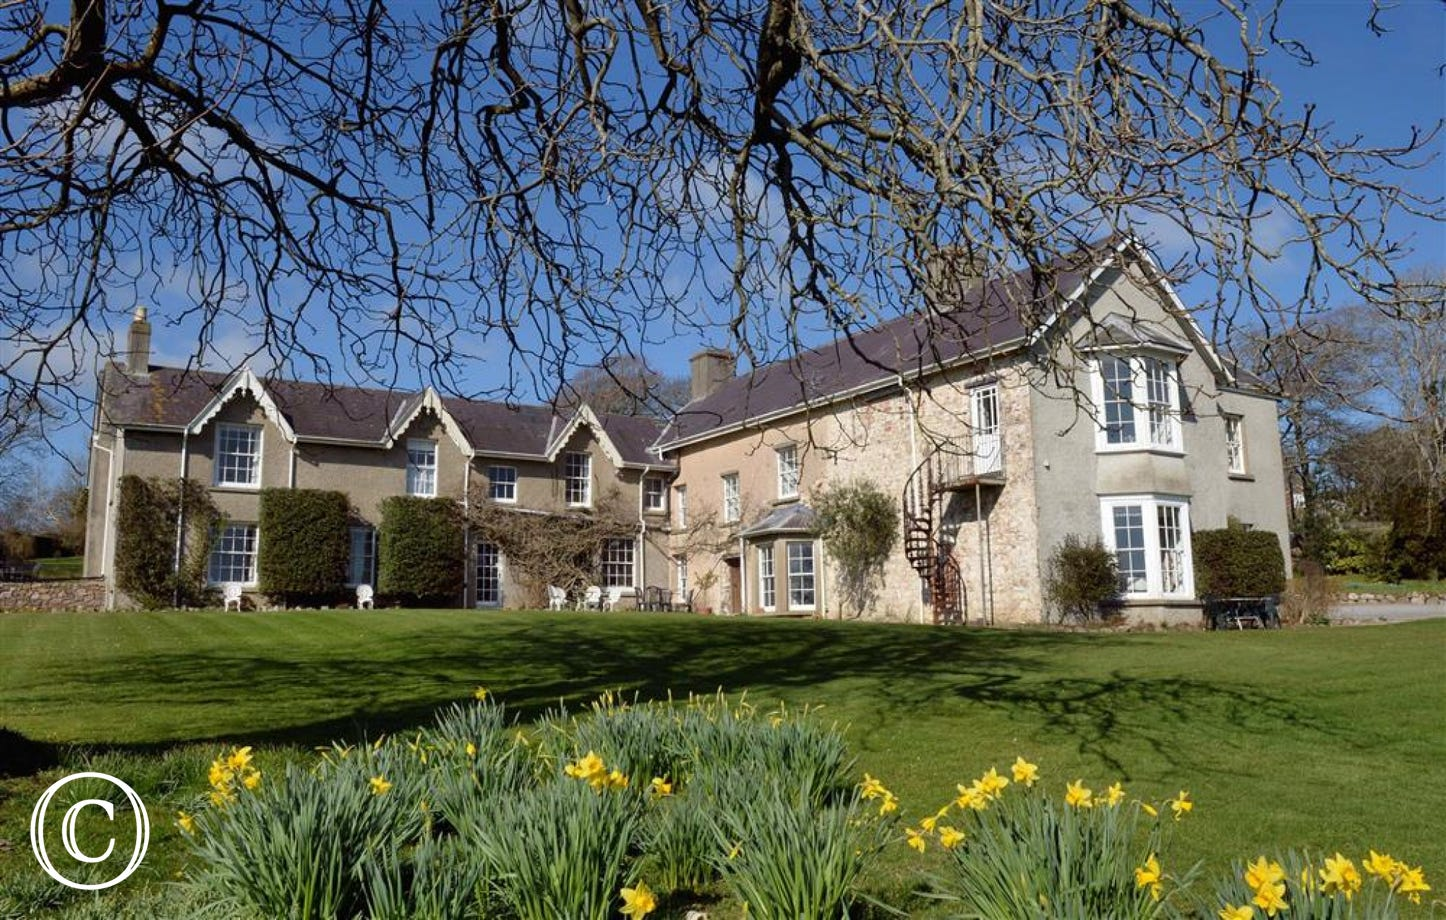 Penmaen Manor House is set in a perfect position overlooking Three Cliffs Bay.